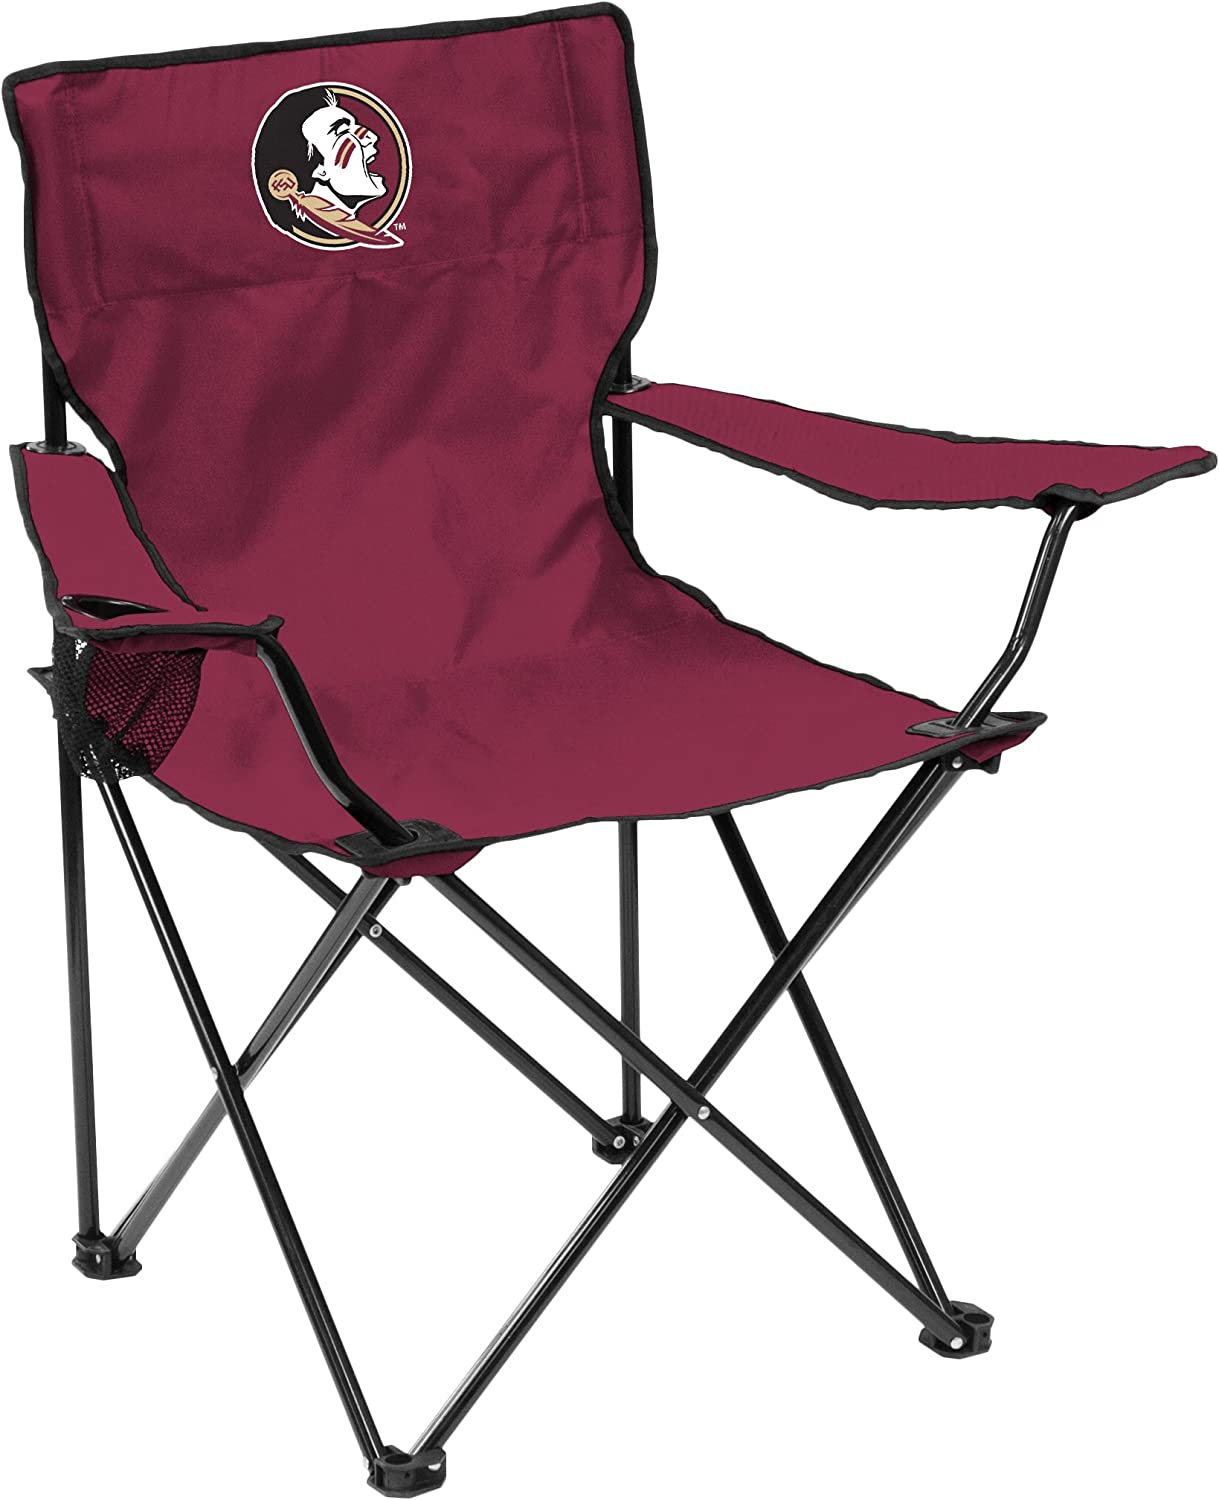 NCAA Florida State Seminoles Quad Chair, Adult, Red (136-13Q)